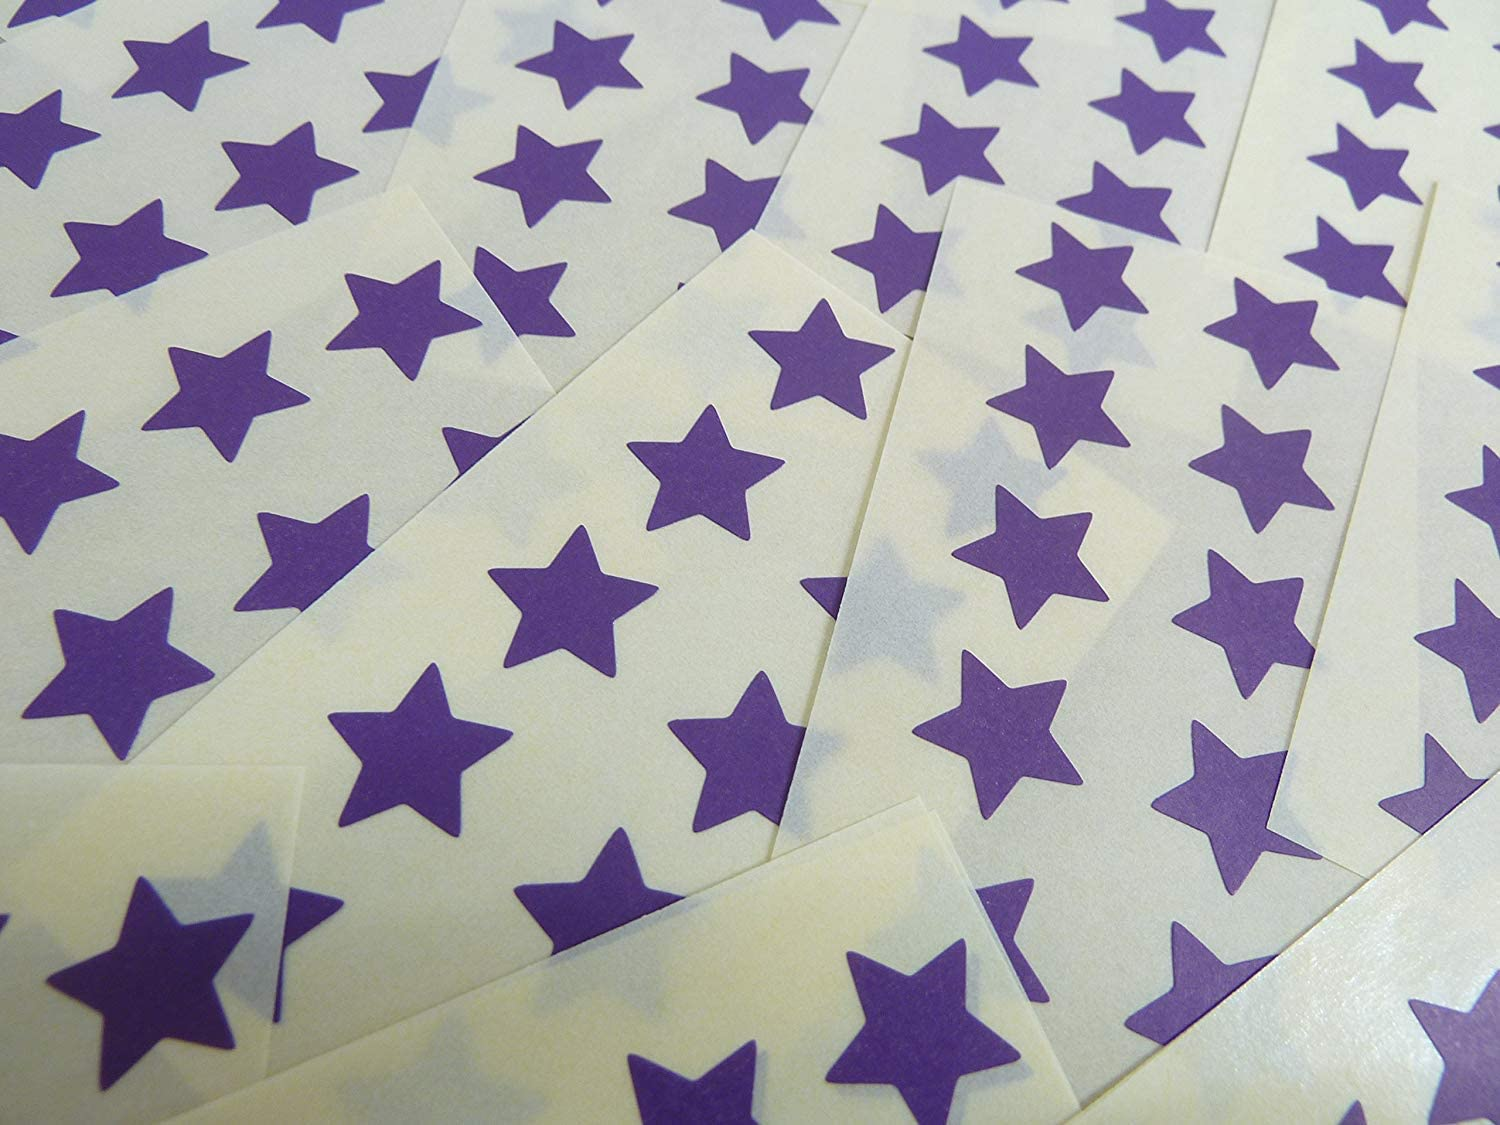 15mm Dark Purple Violet Star Shaped Labels Sticky Stars for Craft and Decoration 180 Self-Adhesive Colour Code Stickers